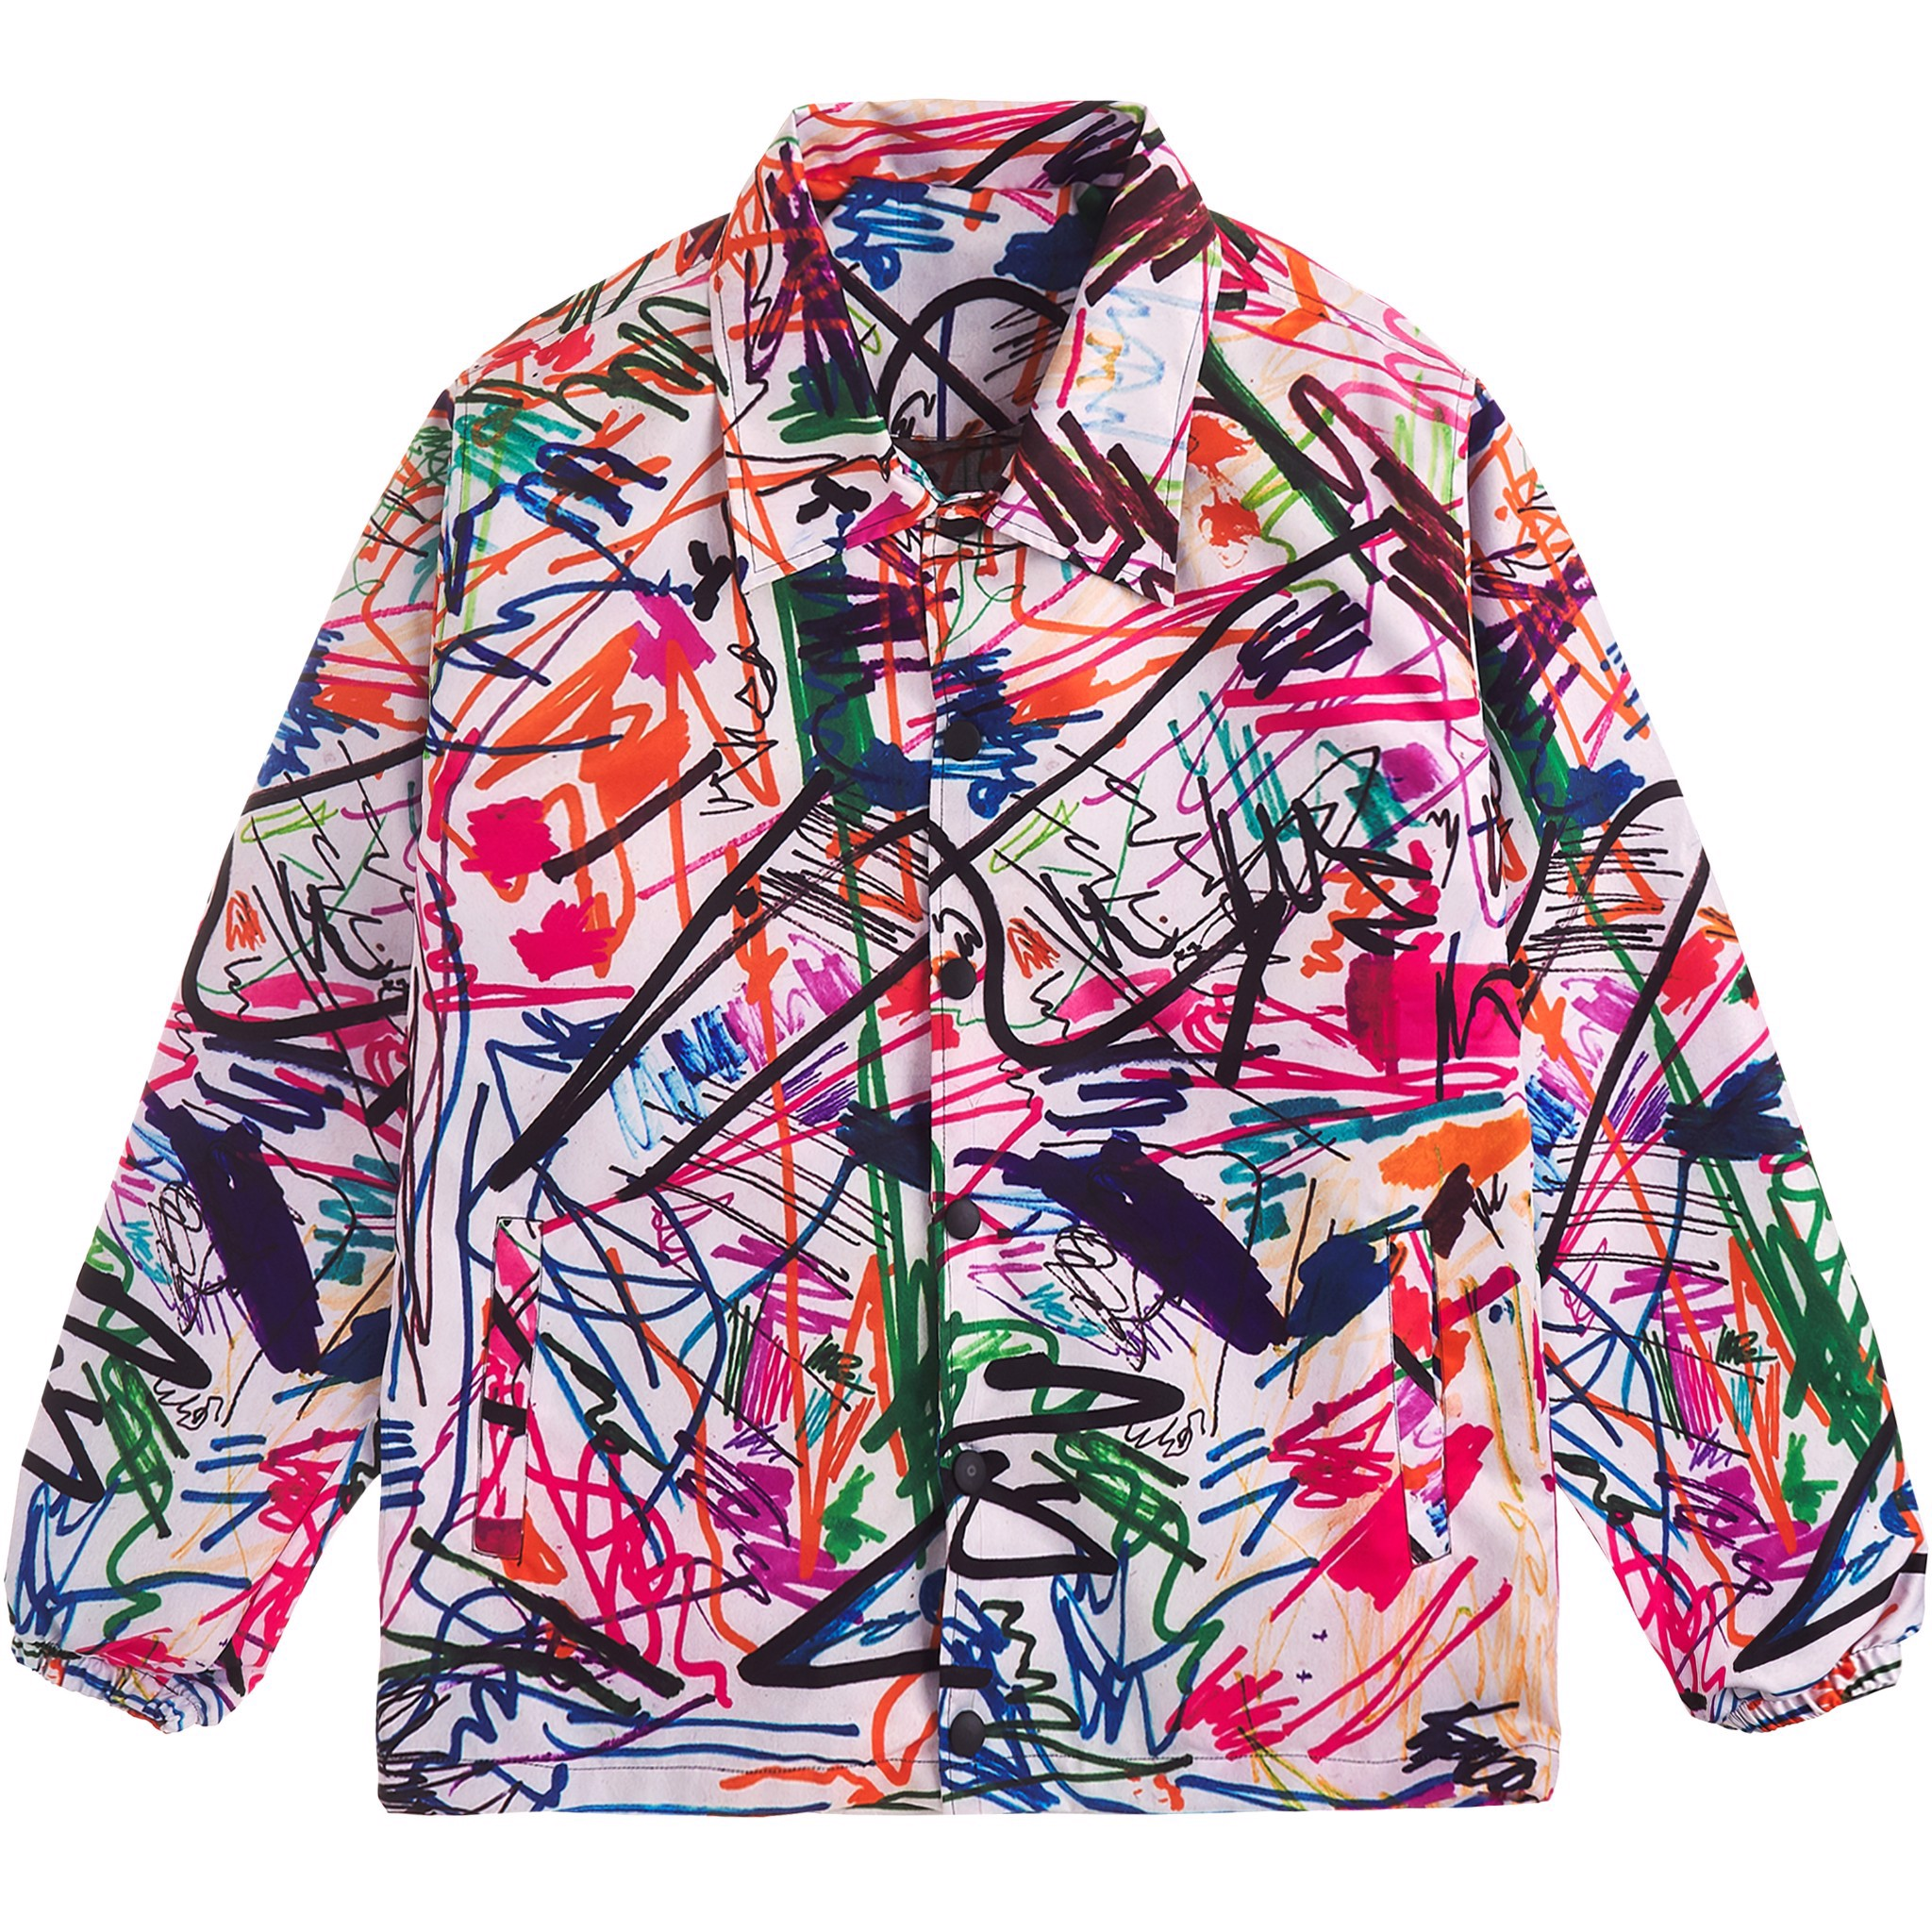 COCOGRAPHY OVERPRINTED JACKET